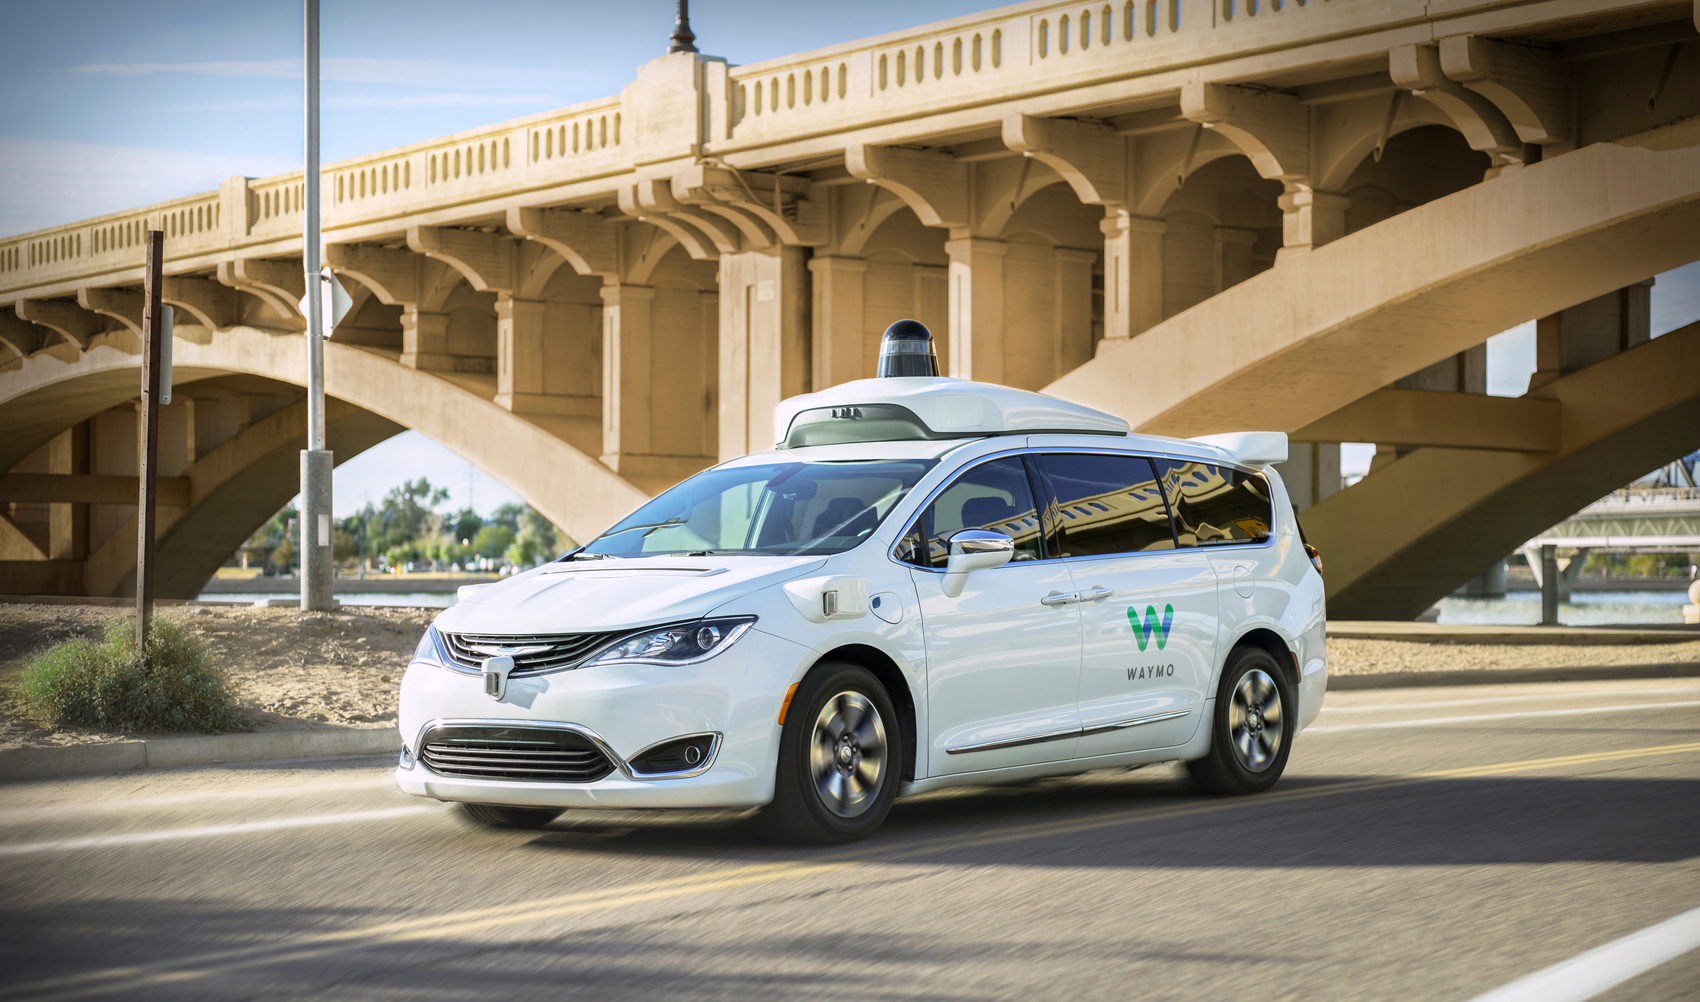 Car Service Near Me Now >> Uber Lyft And Now Waymo The Self Driving Car Service Hits The